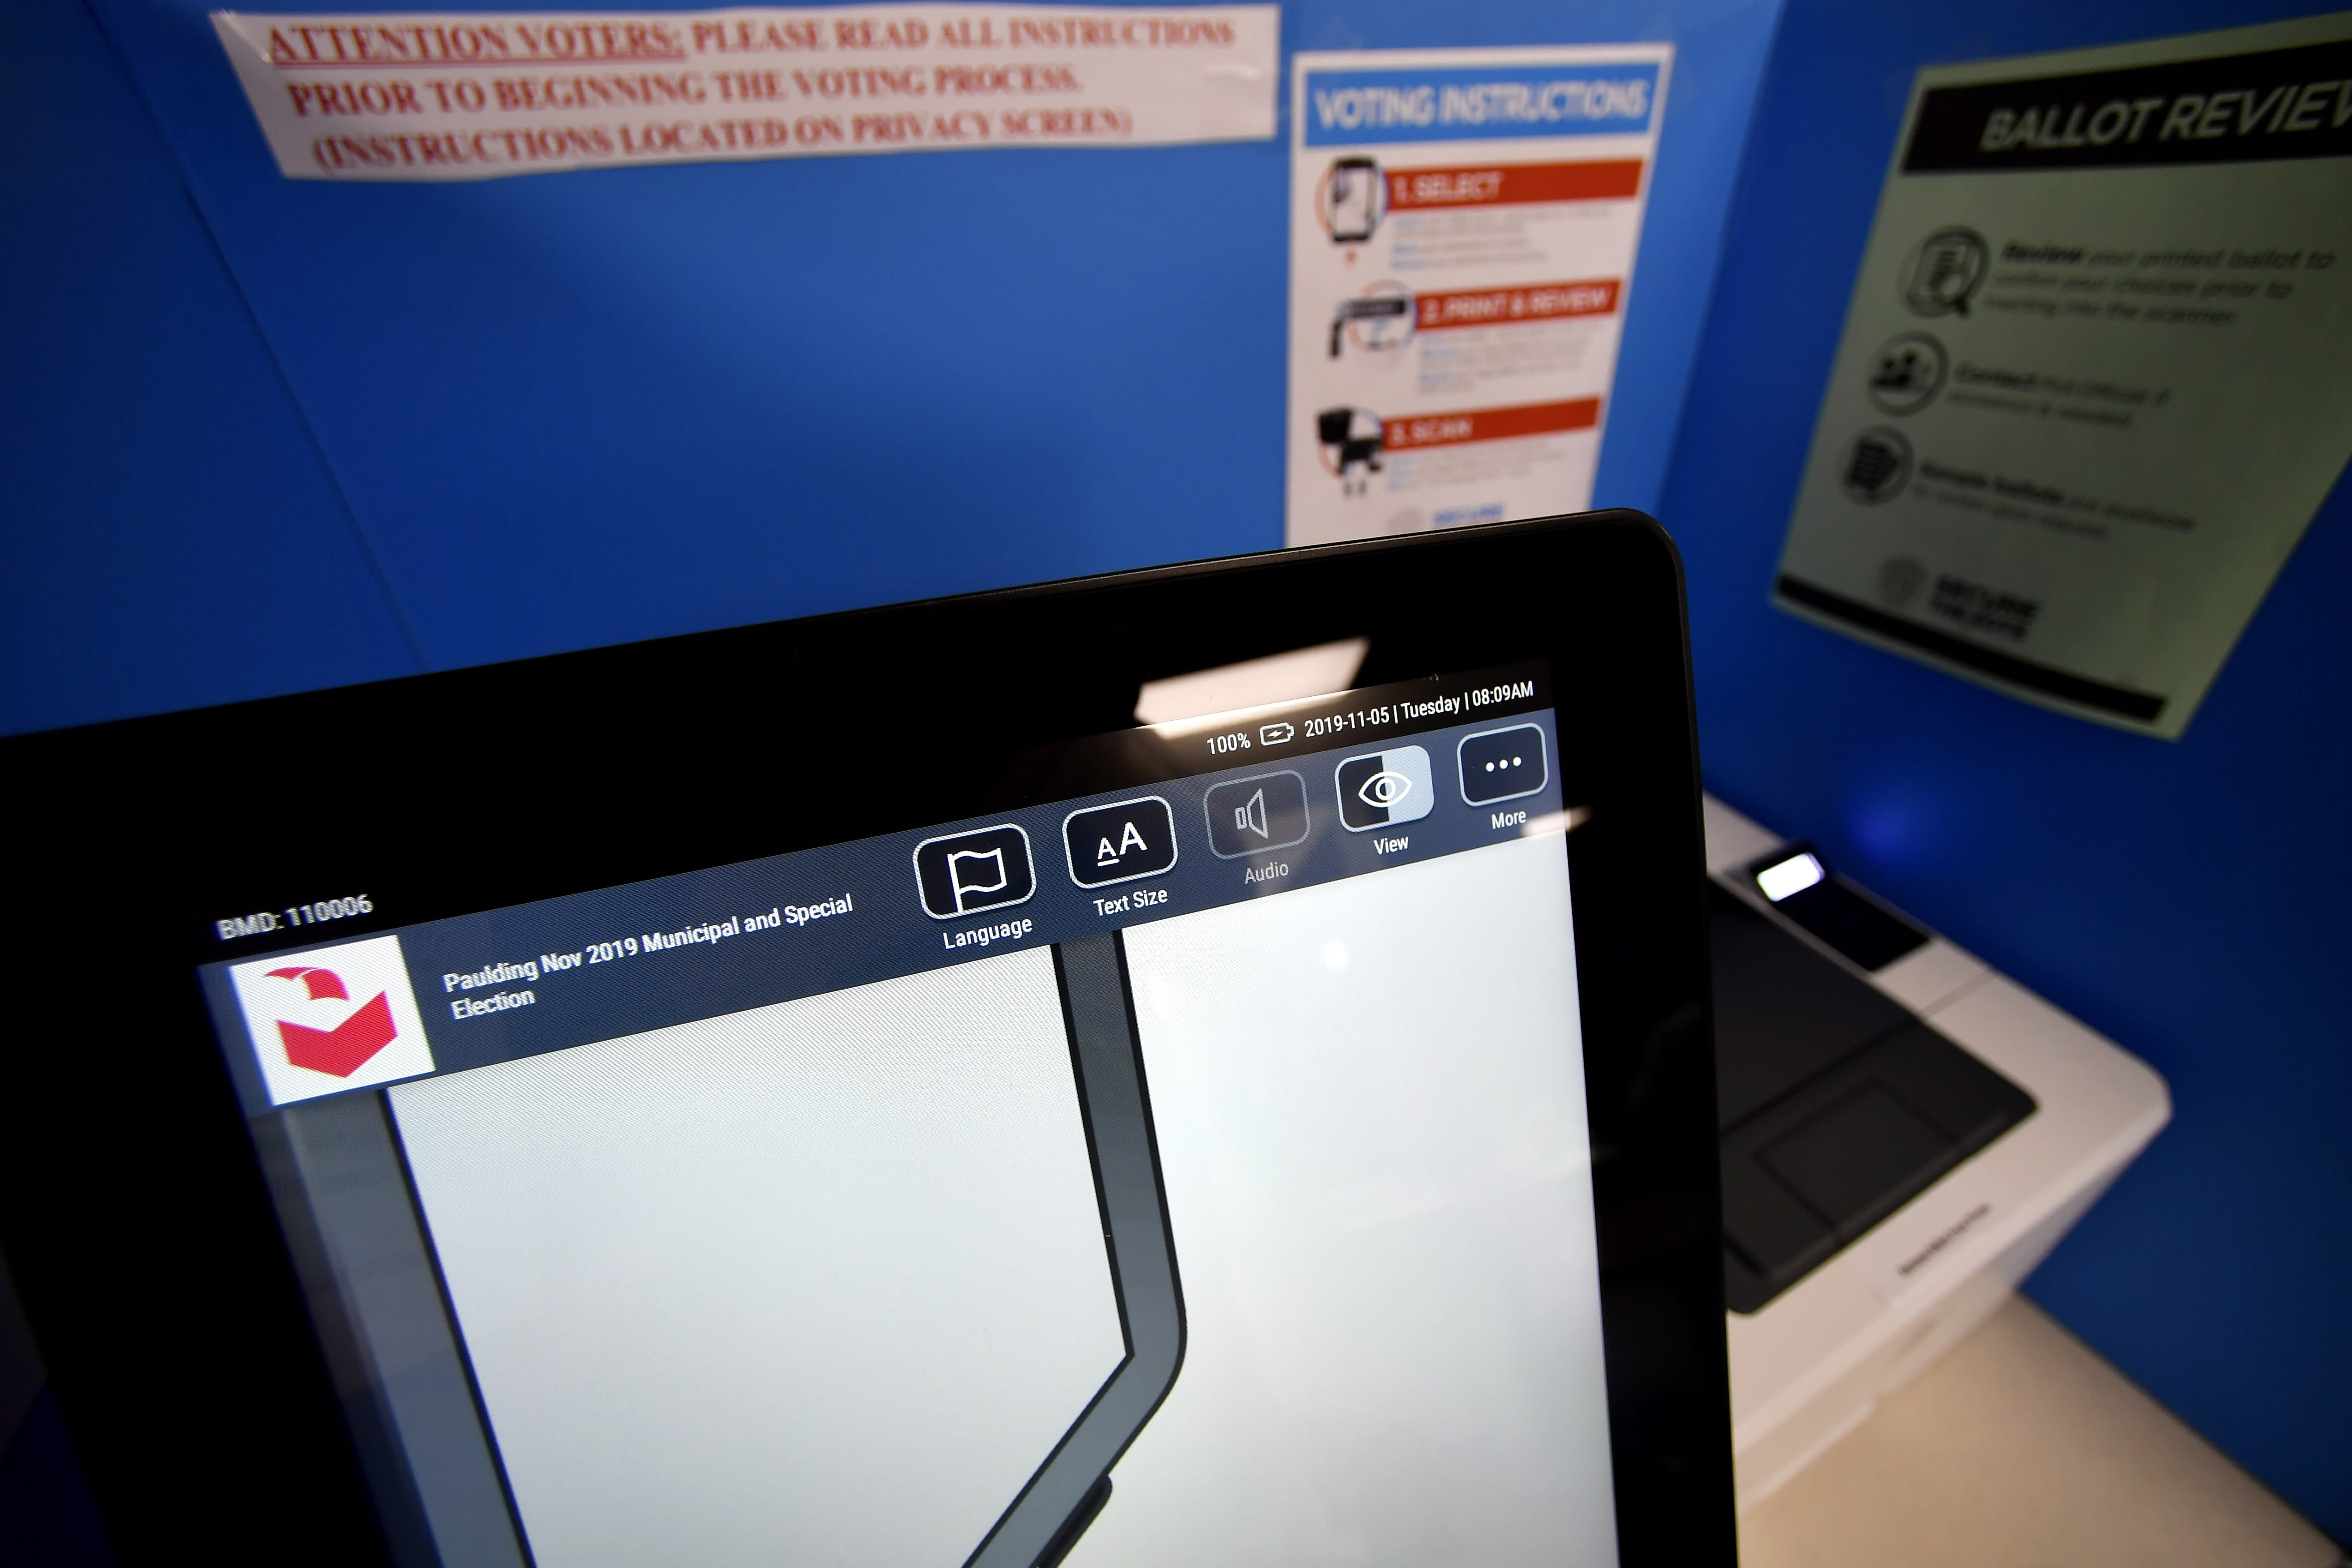 FILE-In this Tuesday, Nov. 5, 2019 file photo, a touchscreen voting machine and printer are seen in a voting booth, in Paulding, Ga. Voting integrity advocates will try this week to convince a federal judge that the state of Georgia should scrap its touchscreen voting machines in favor of hand-marked paper ballots, while the state will ask her not to order any changes, especially so close to an election. (AP Photo/Mike Stewart, File)